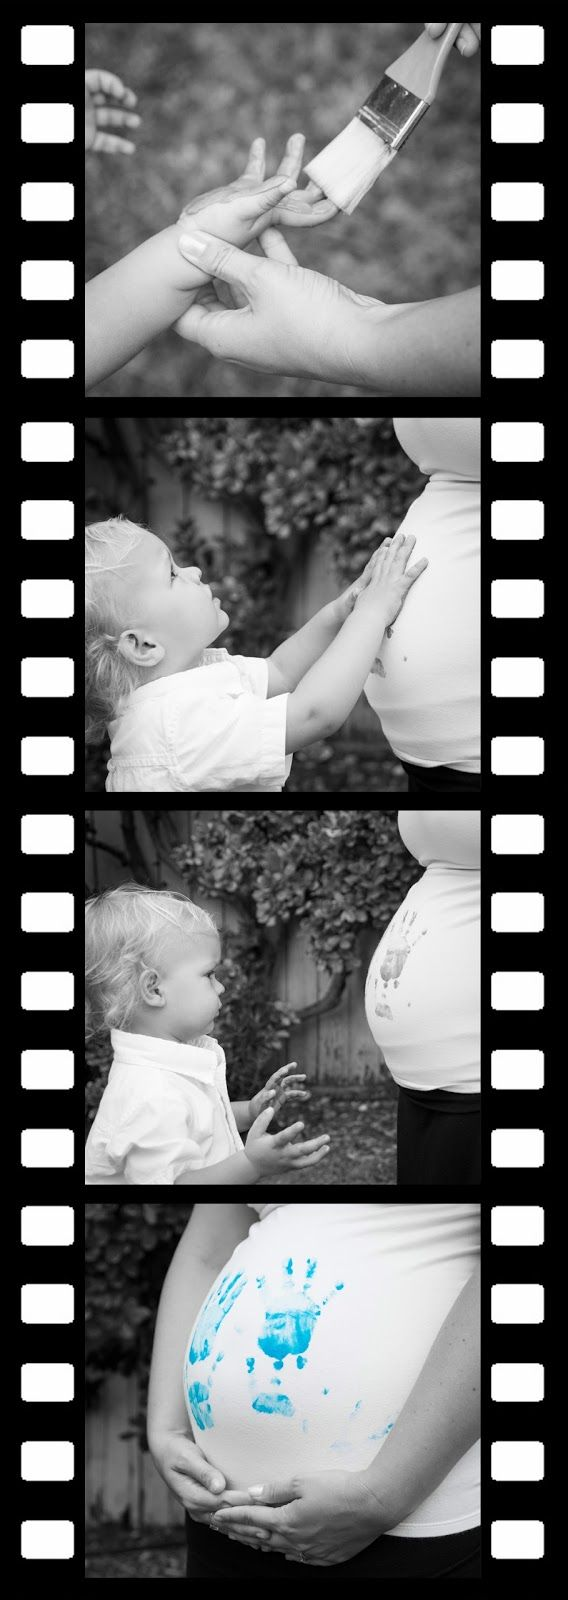 Love @Luana Biddulph Biddulph Biddulph Biddulph {la petite lulu}'s gender reveal idea for older brothers and sisters!